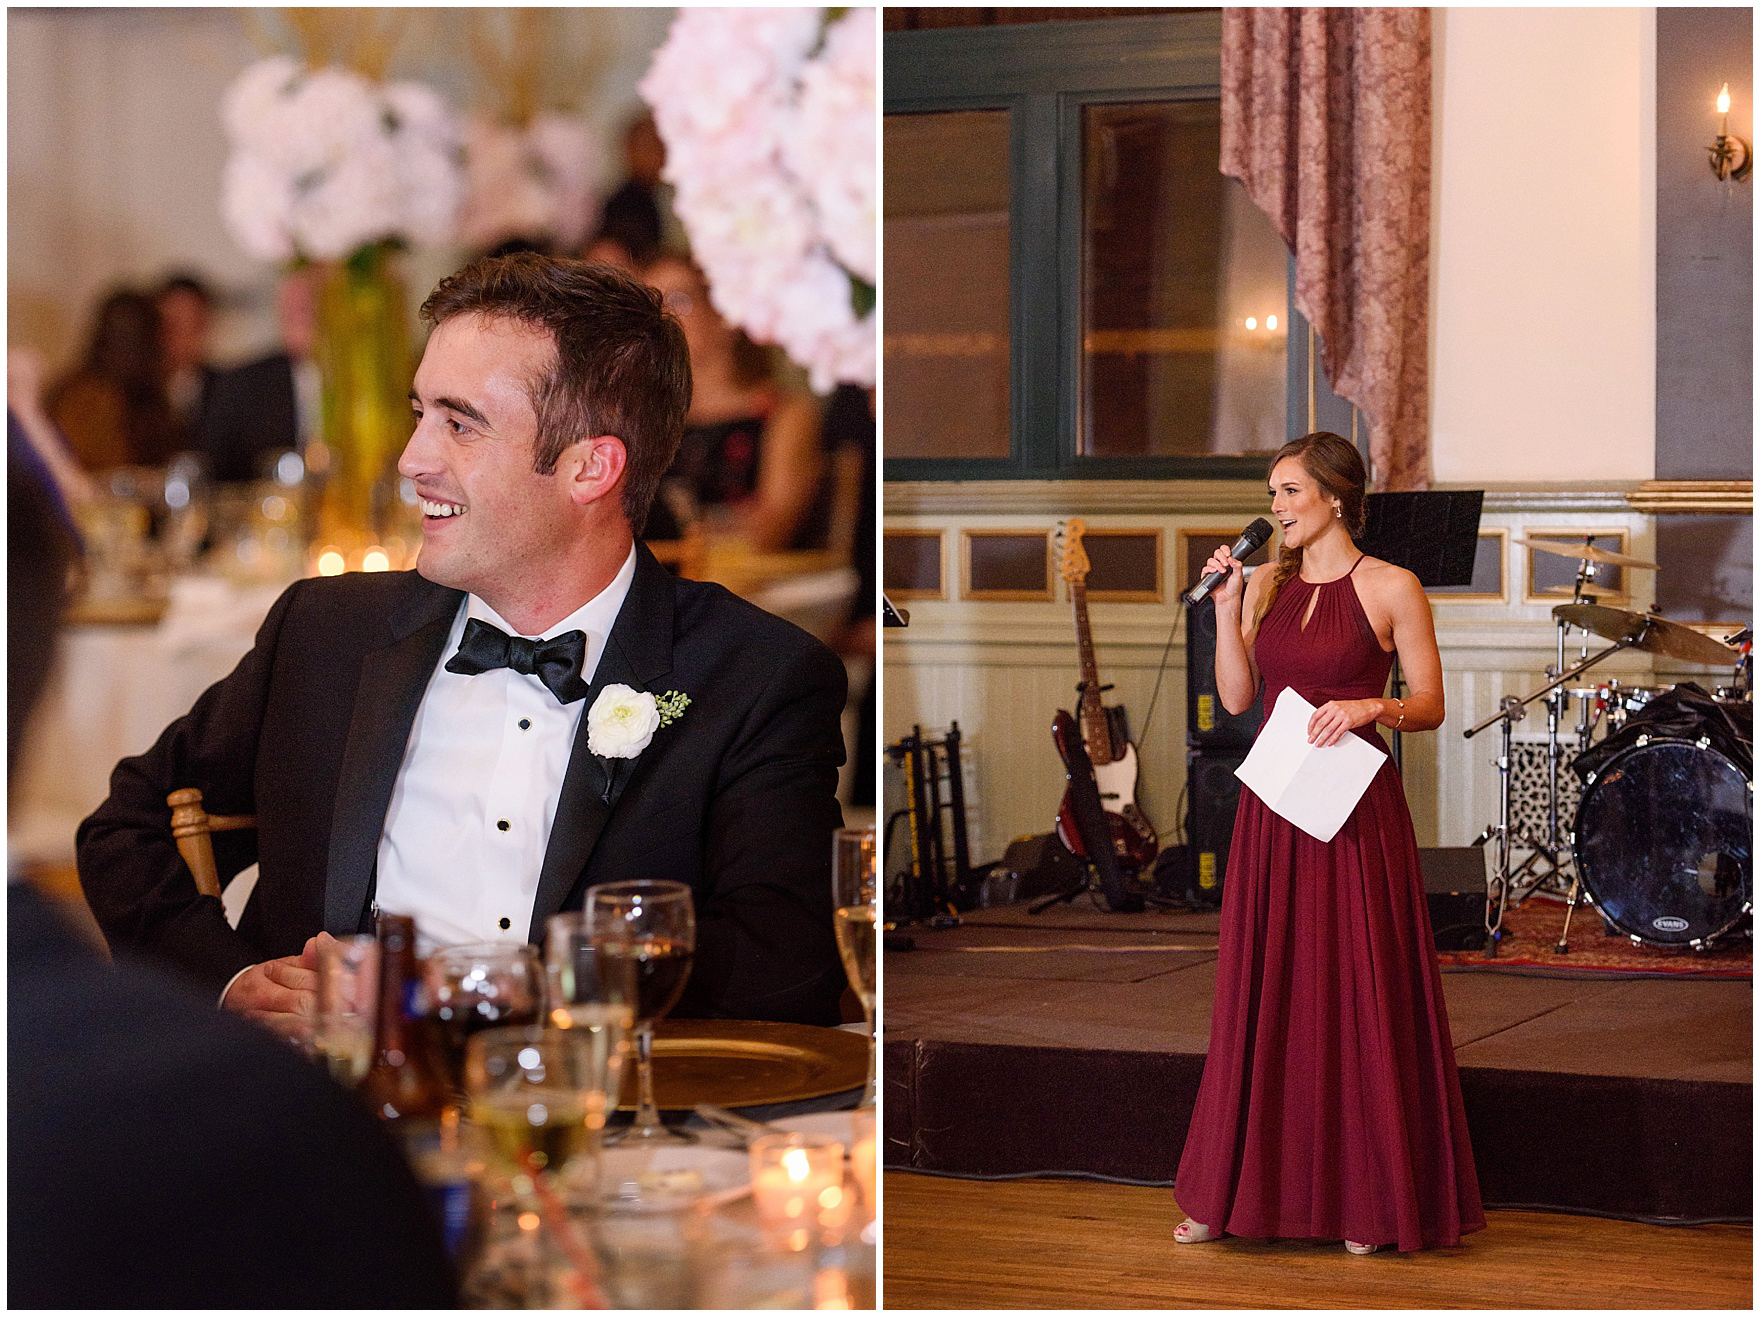 The maid of honor speaks during a St. Clement Germania Place Chicago wedding.